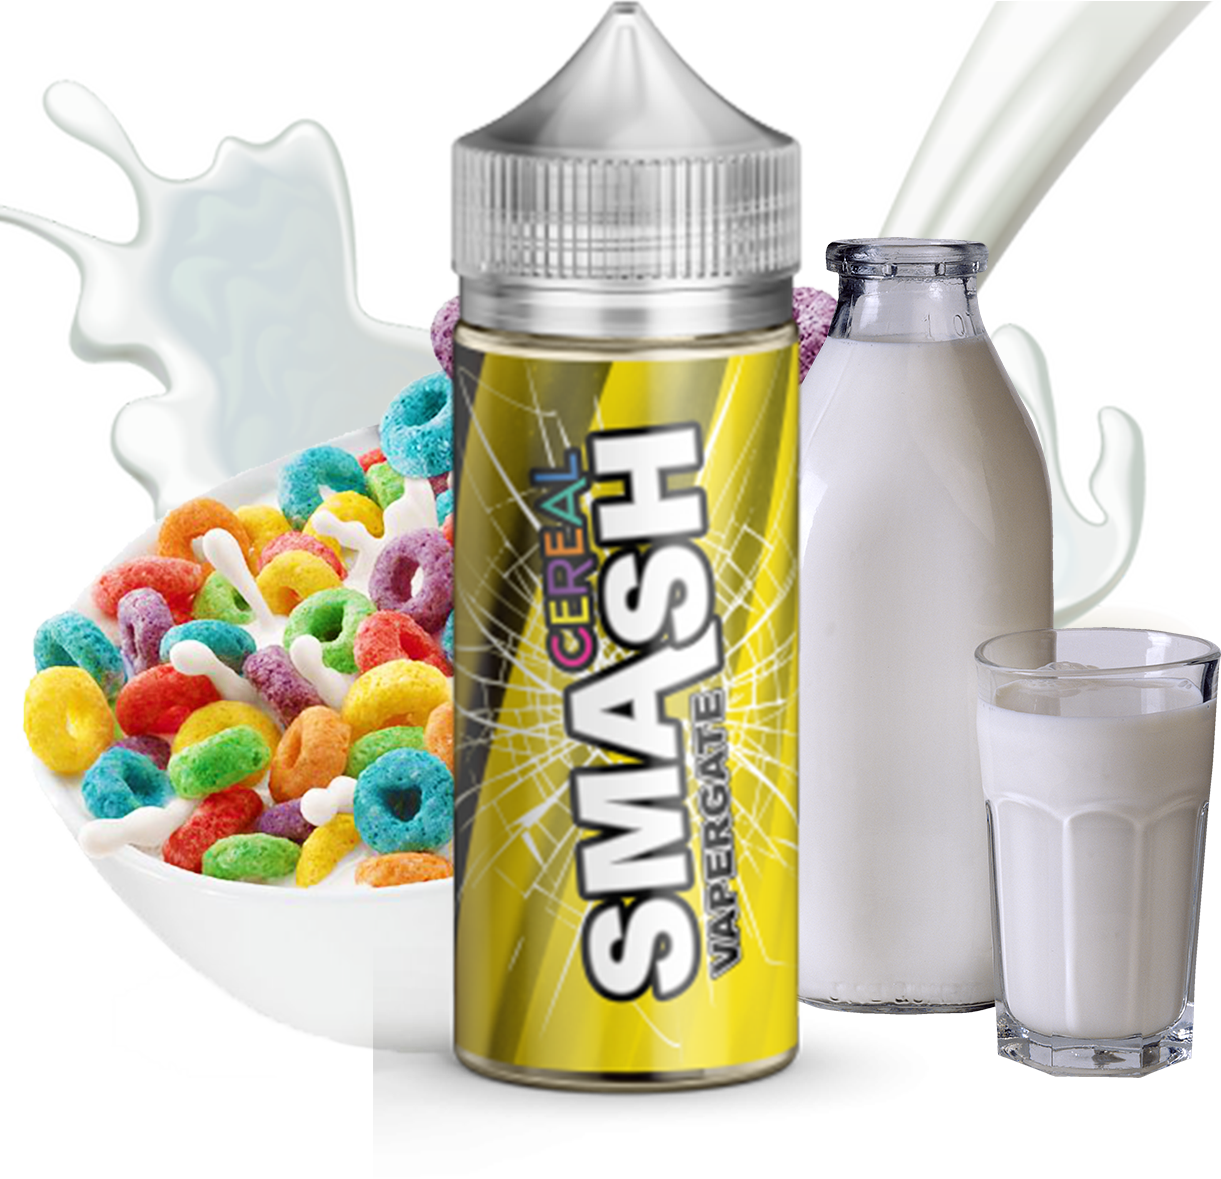 Vapergate - Smash - Cereal - 100ML Vape Juice - Fruity Cereal With Milk Plastic Bottle